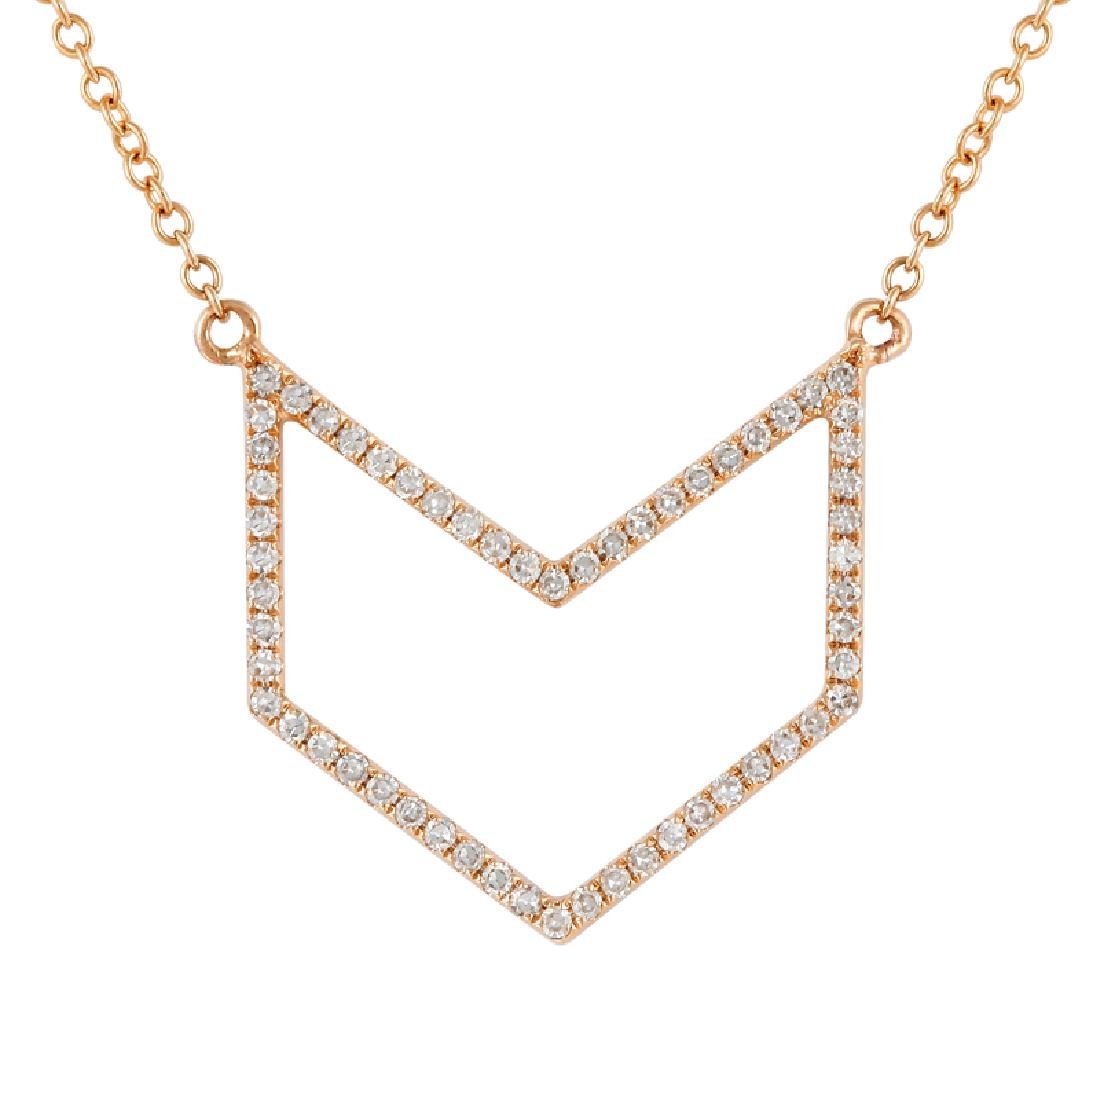 14KT Rose Gold Diamond Necklace - 2